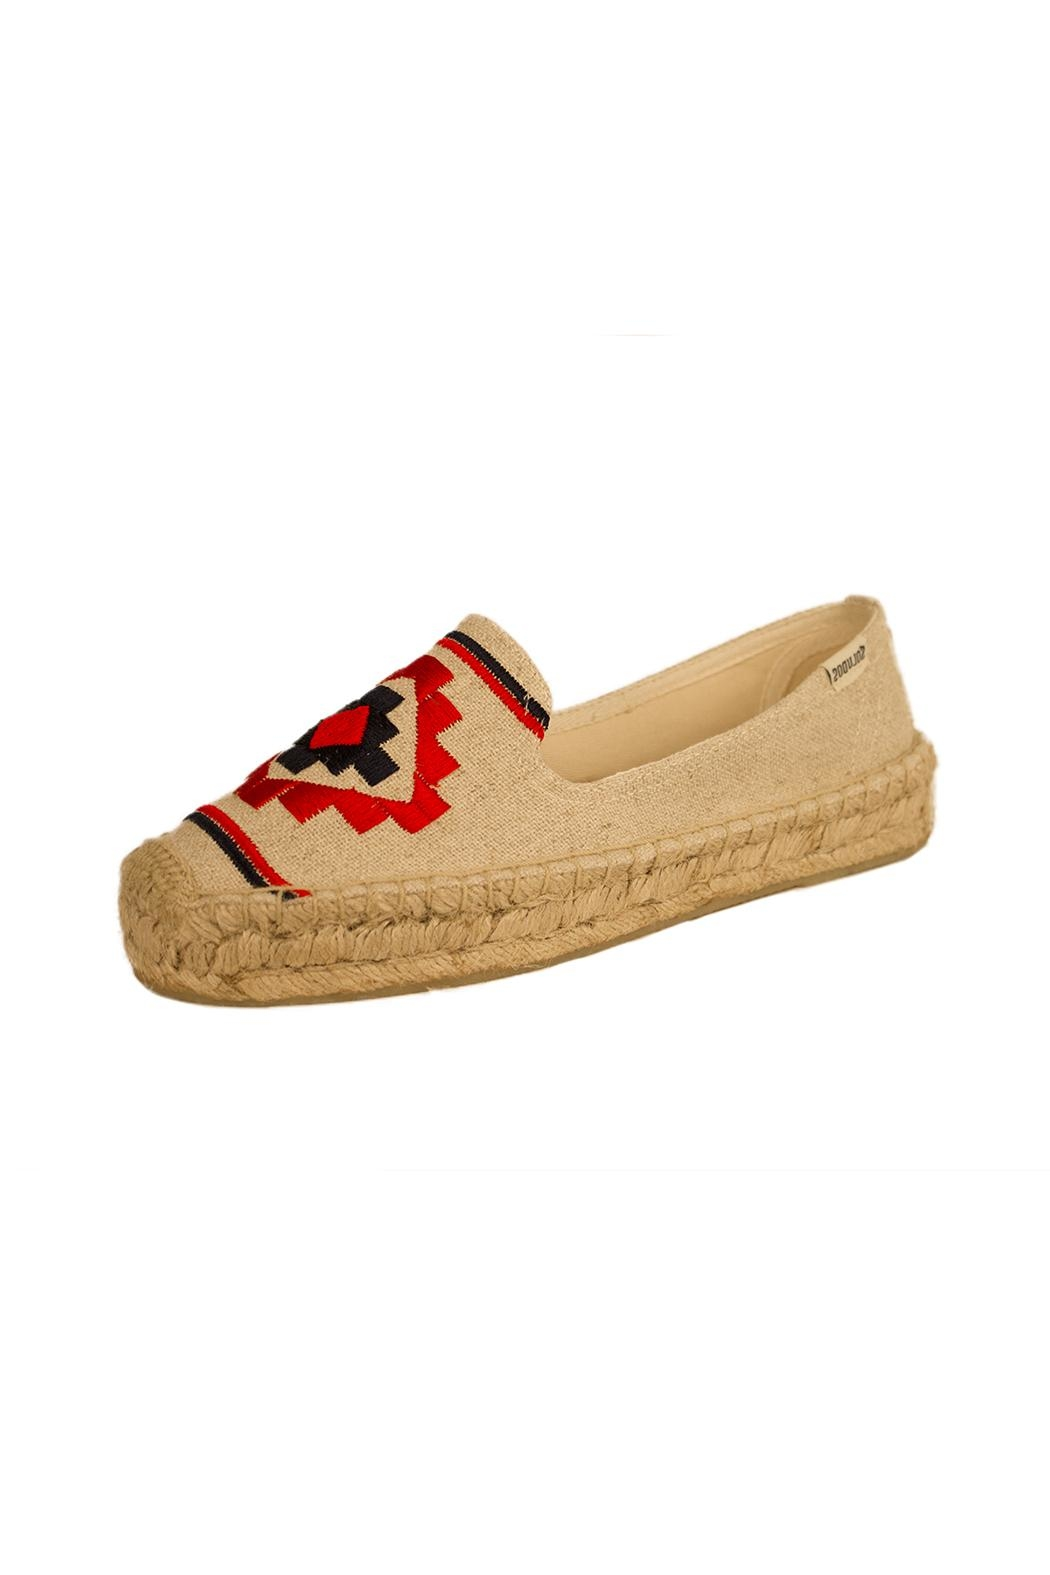 Soludos Sand Flat Espadrille - Front Cropped Image